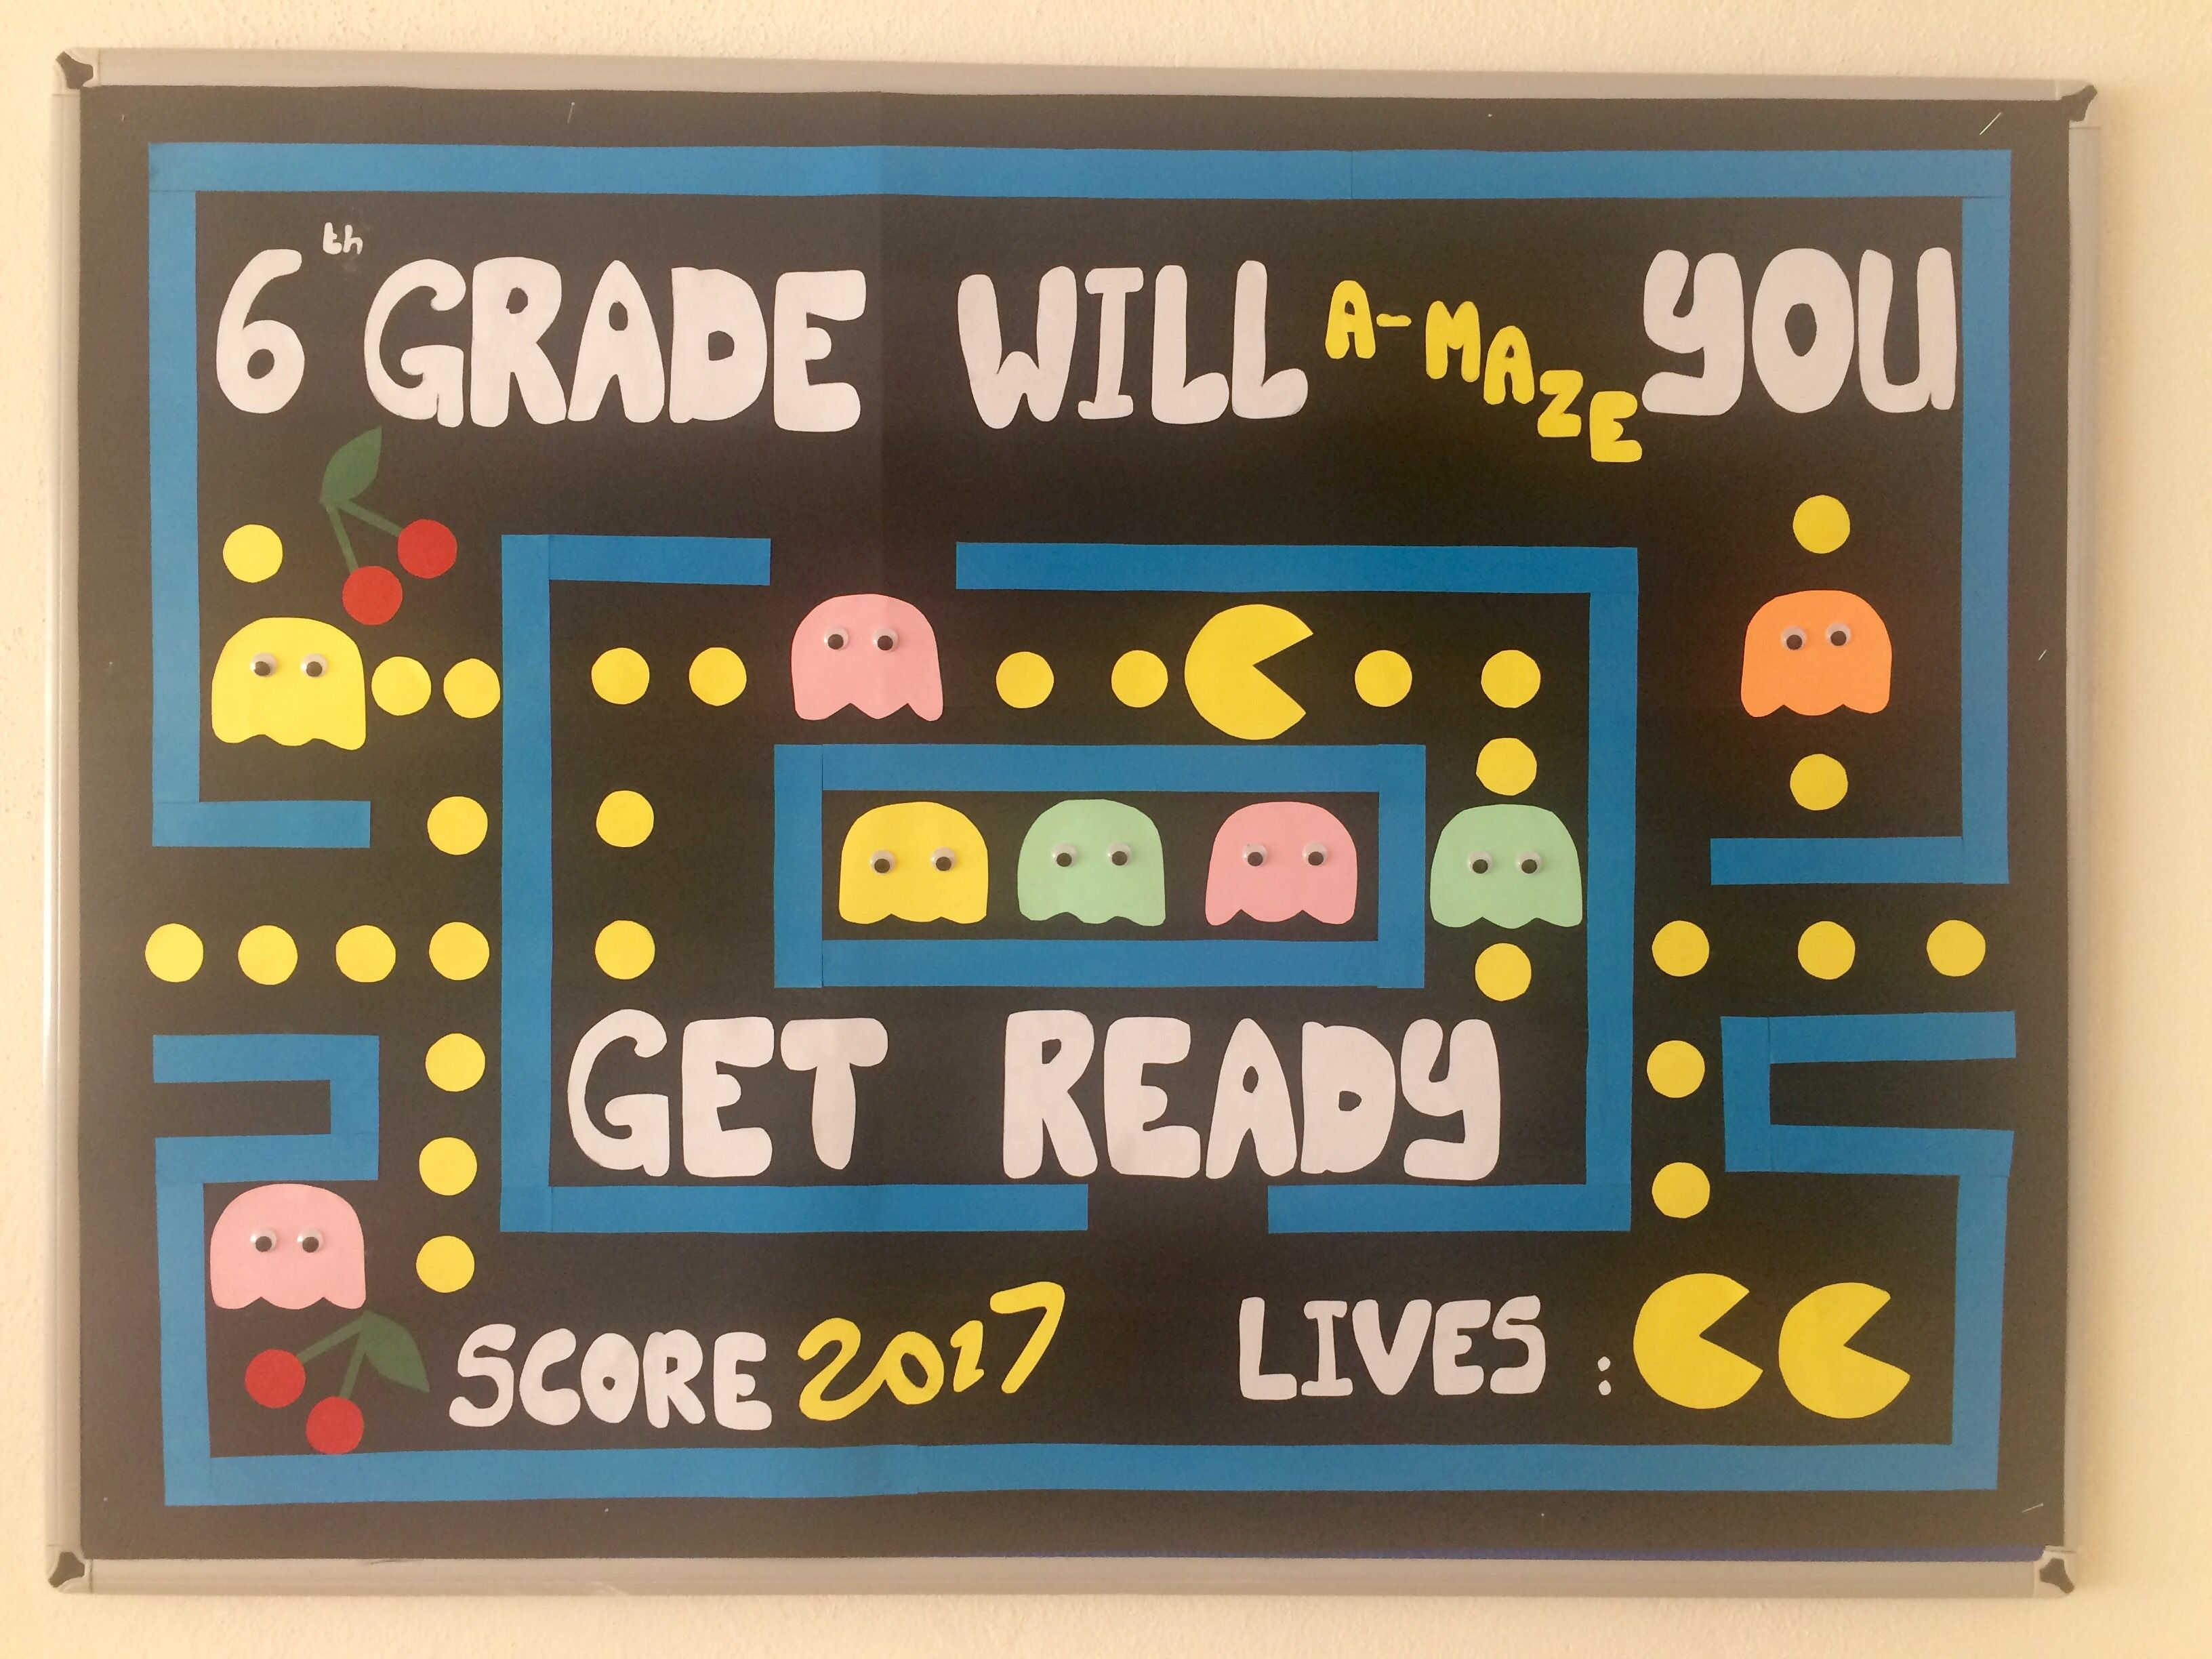 Go green vegetable bulletin board idea myclassroomideas com - 6th Grade School Bulletin Board 6th Grade Will Amaze You